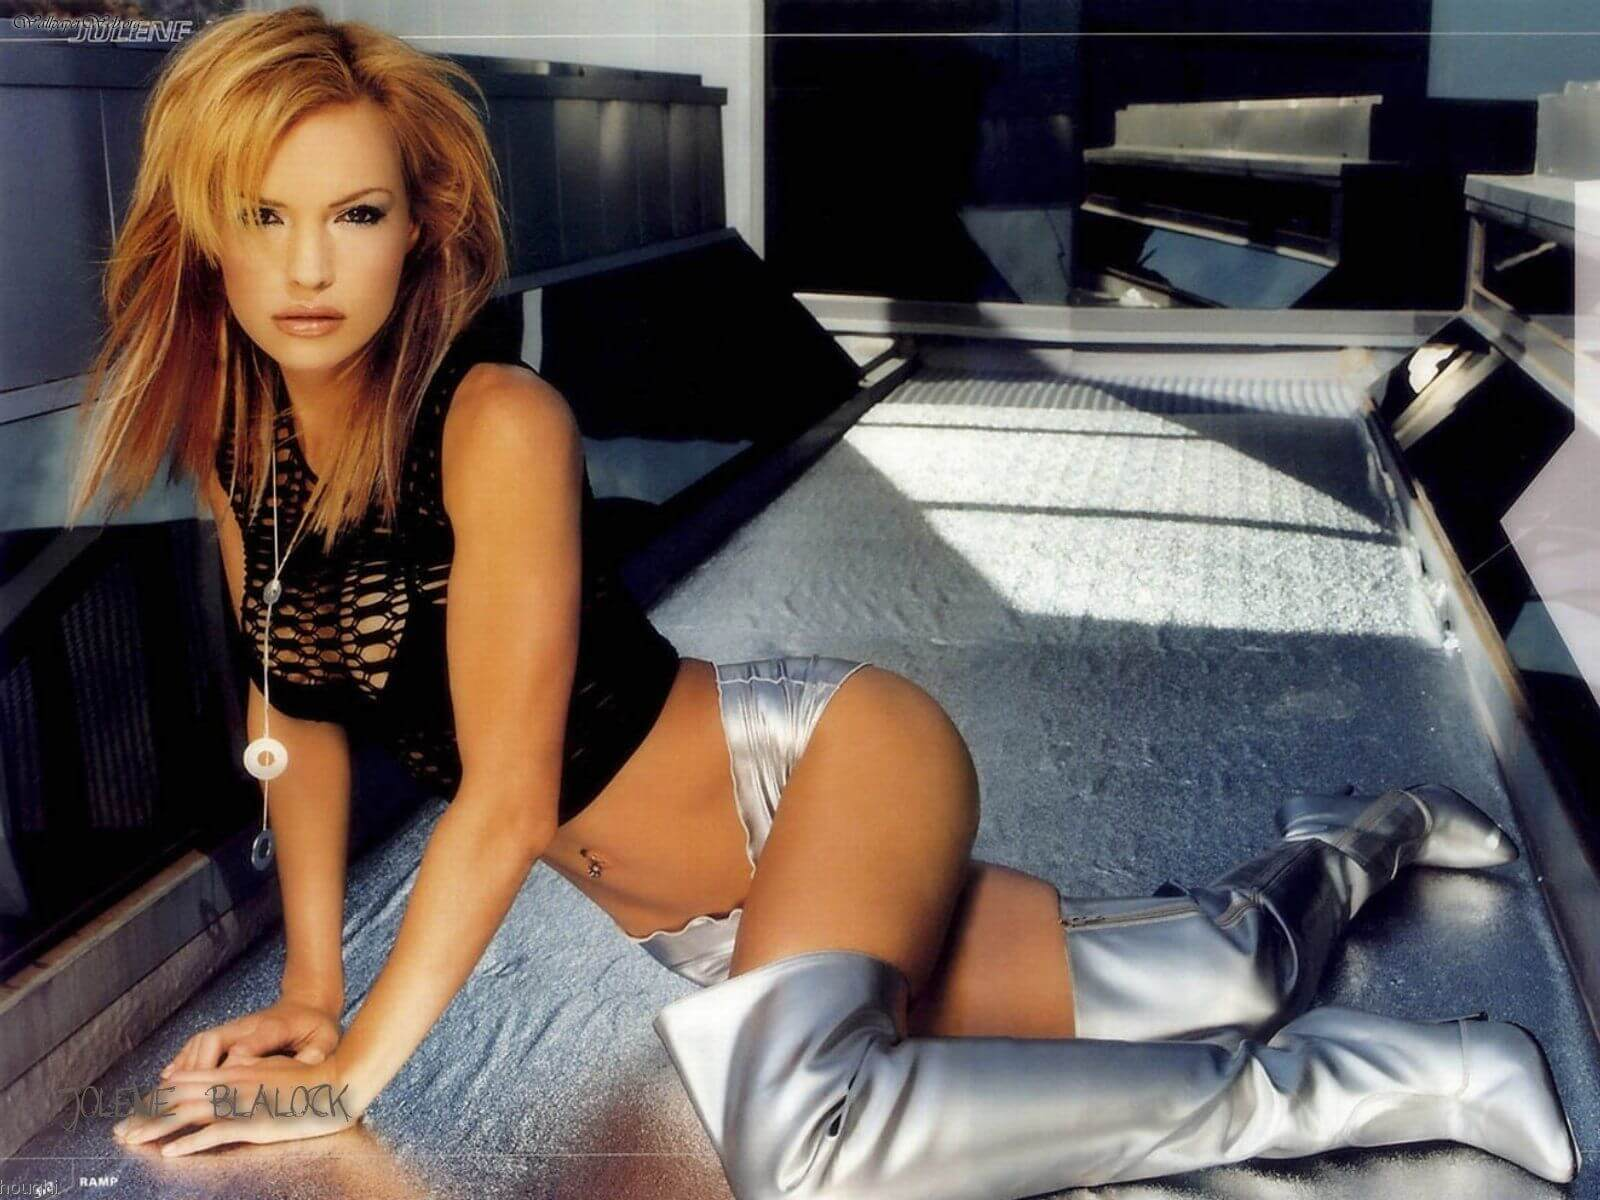 Jolene blalock hot look pics